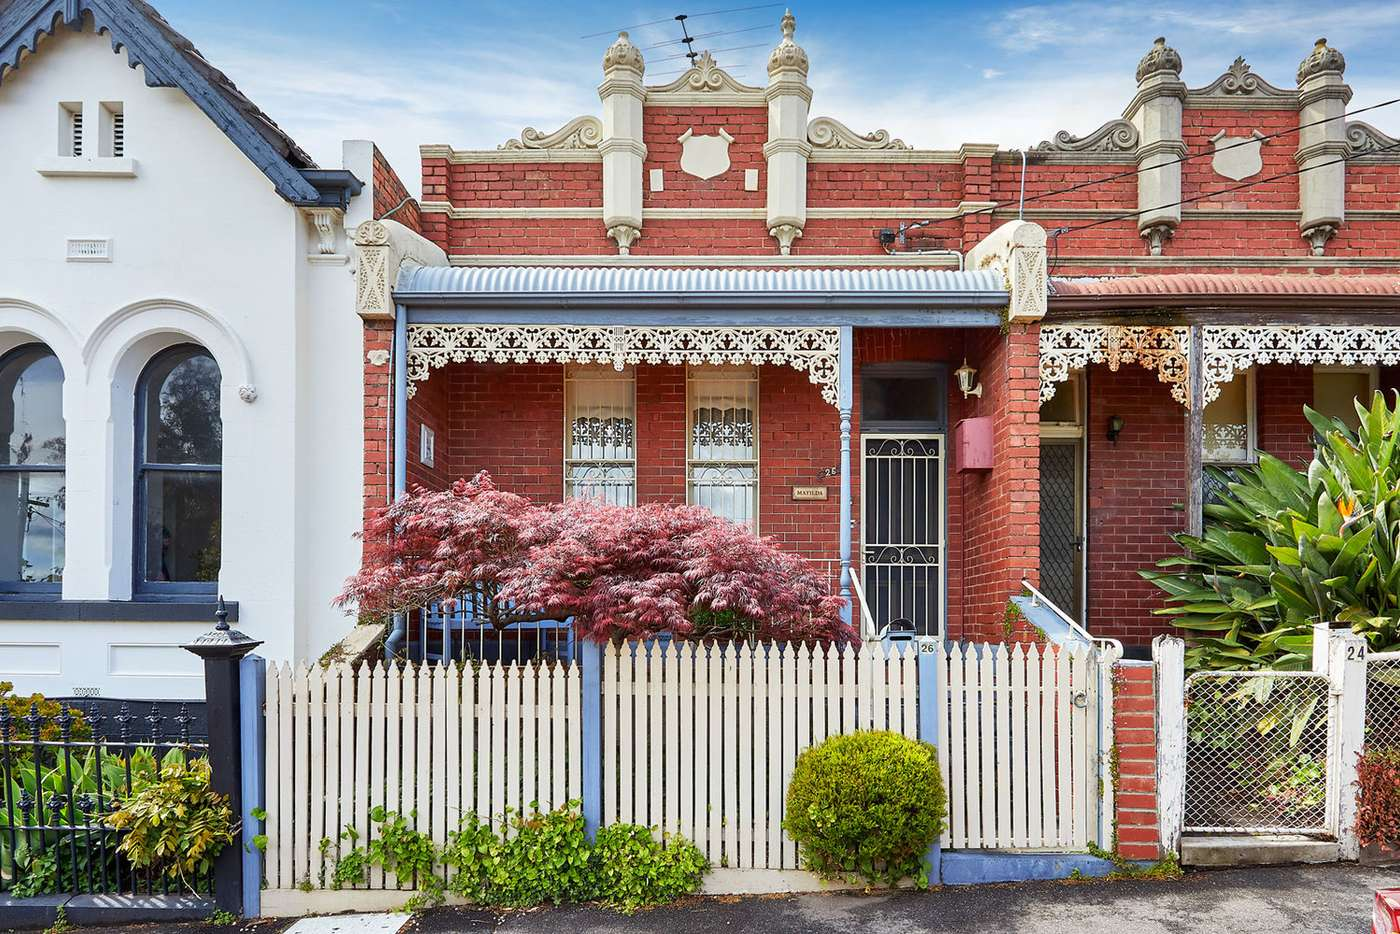 Main view of Homely house listing, 26 Lothian Street, North Melbourne VIC 3051